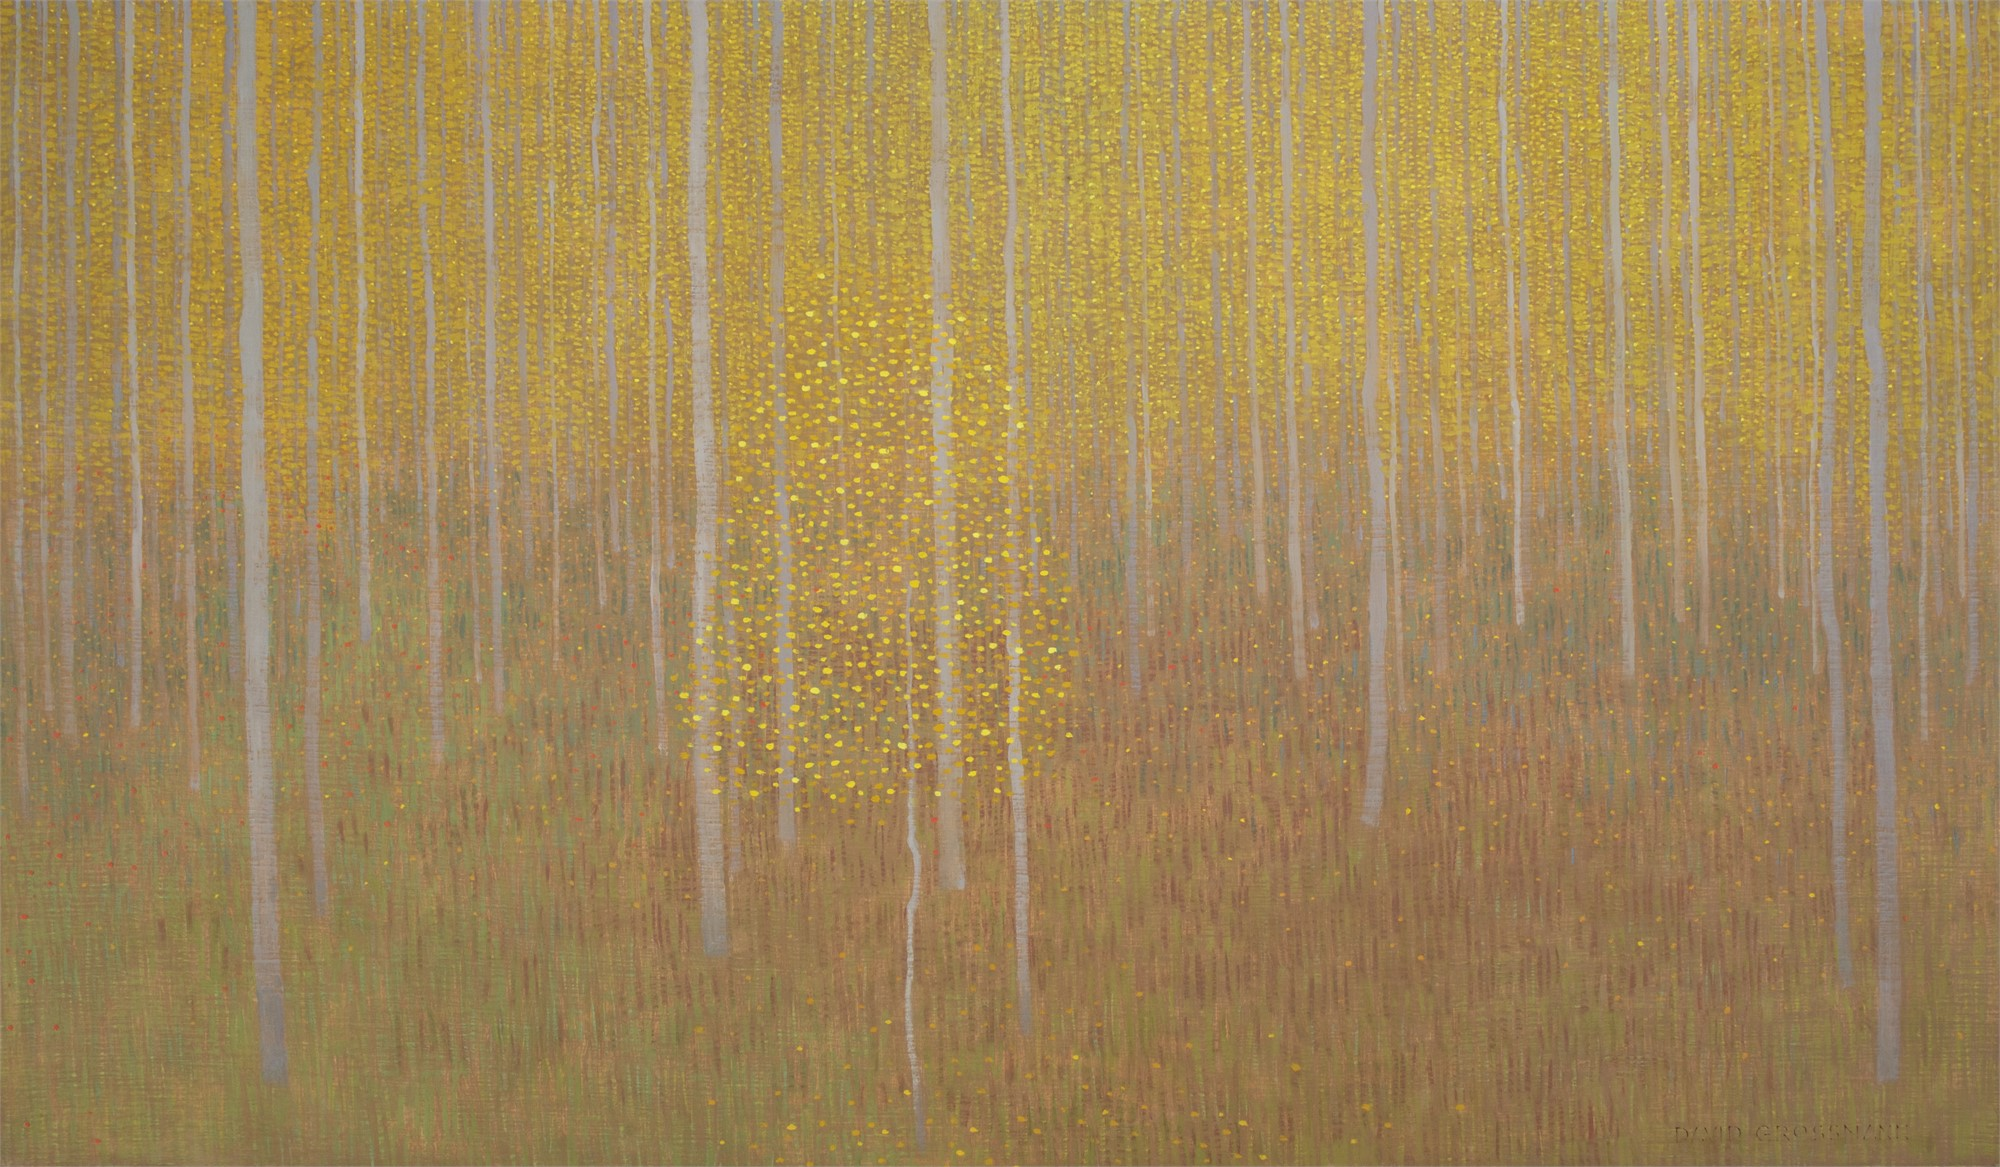 Hovering Autumn Leaves by David Grossmann